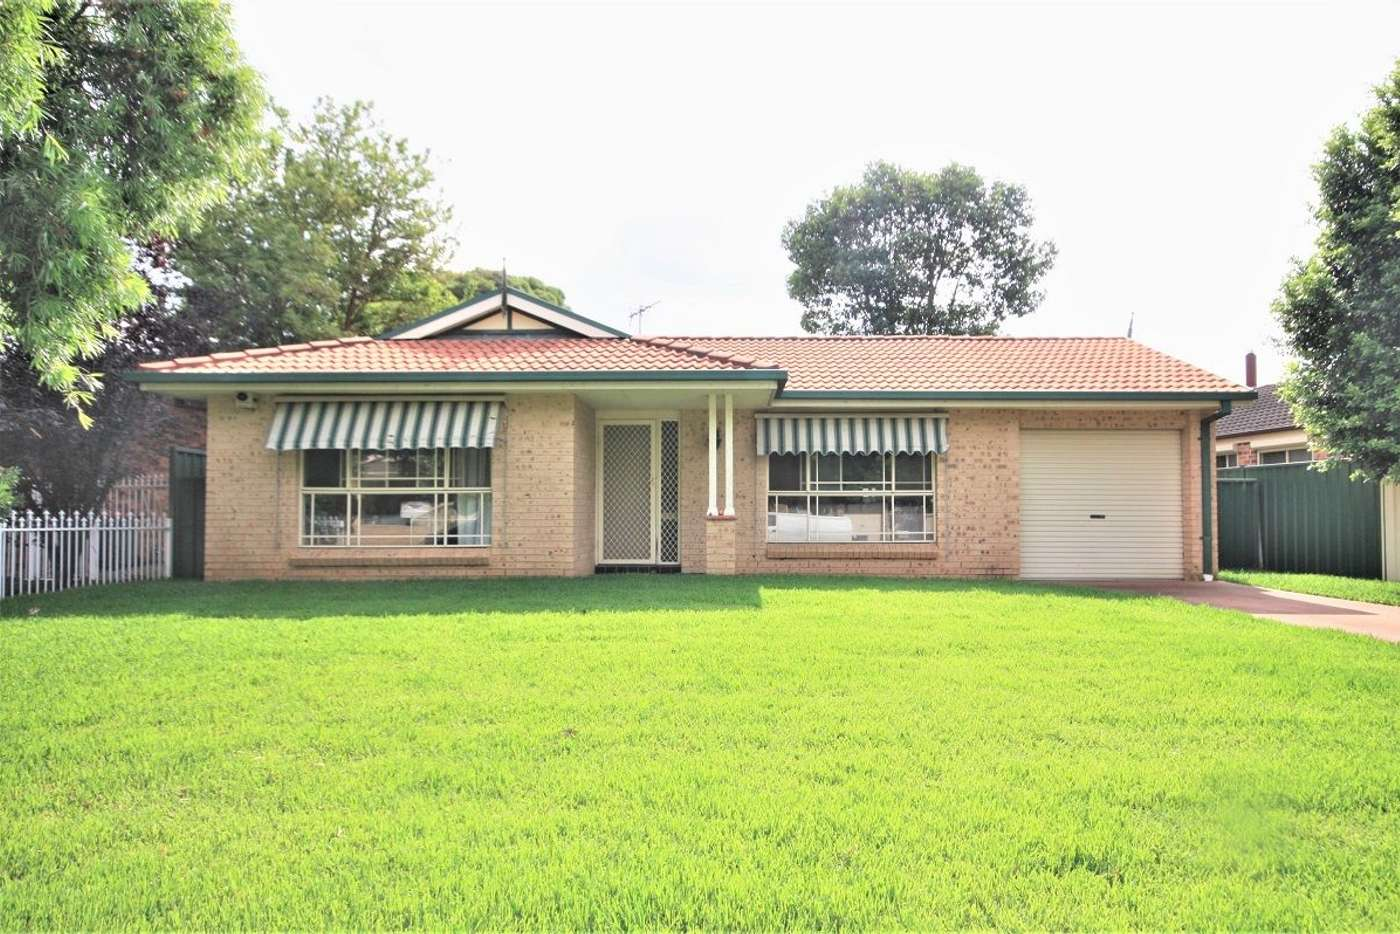 Main view of Homely house listing, 6 Paddy Miller Avenue, Currans Hill NSW 2567